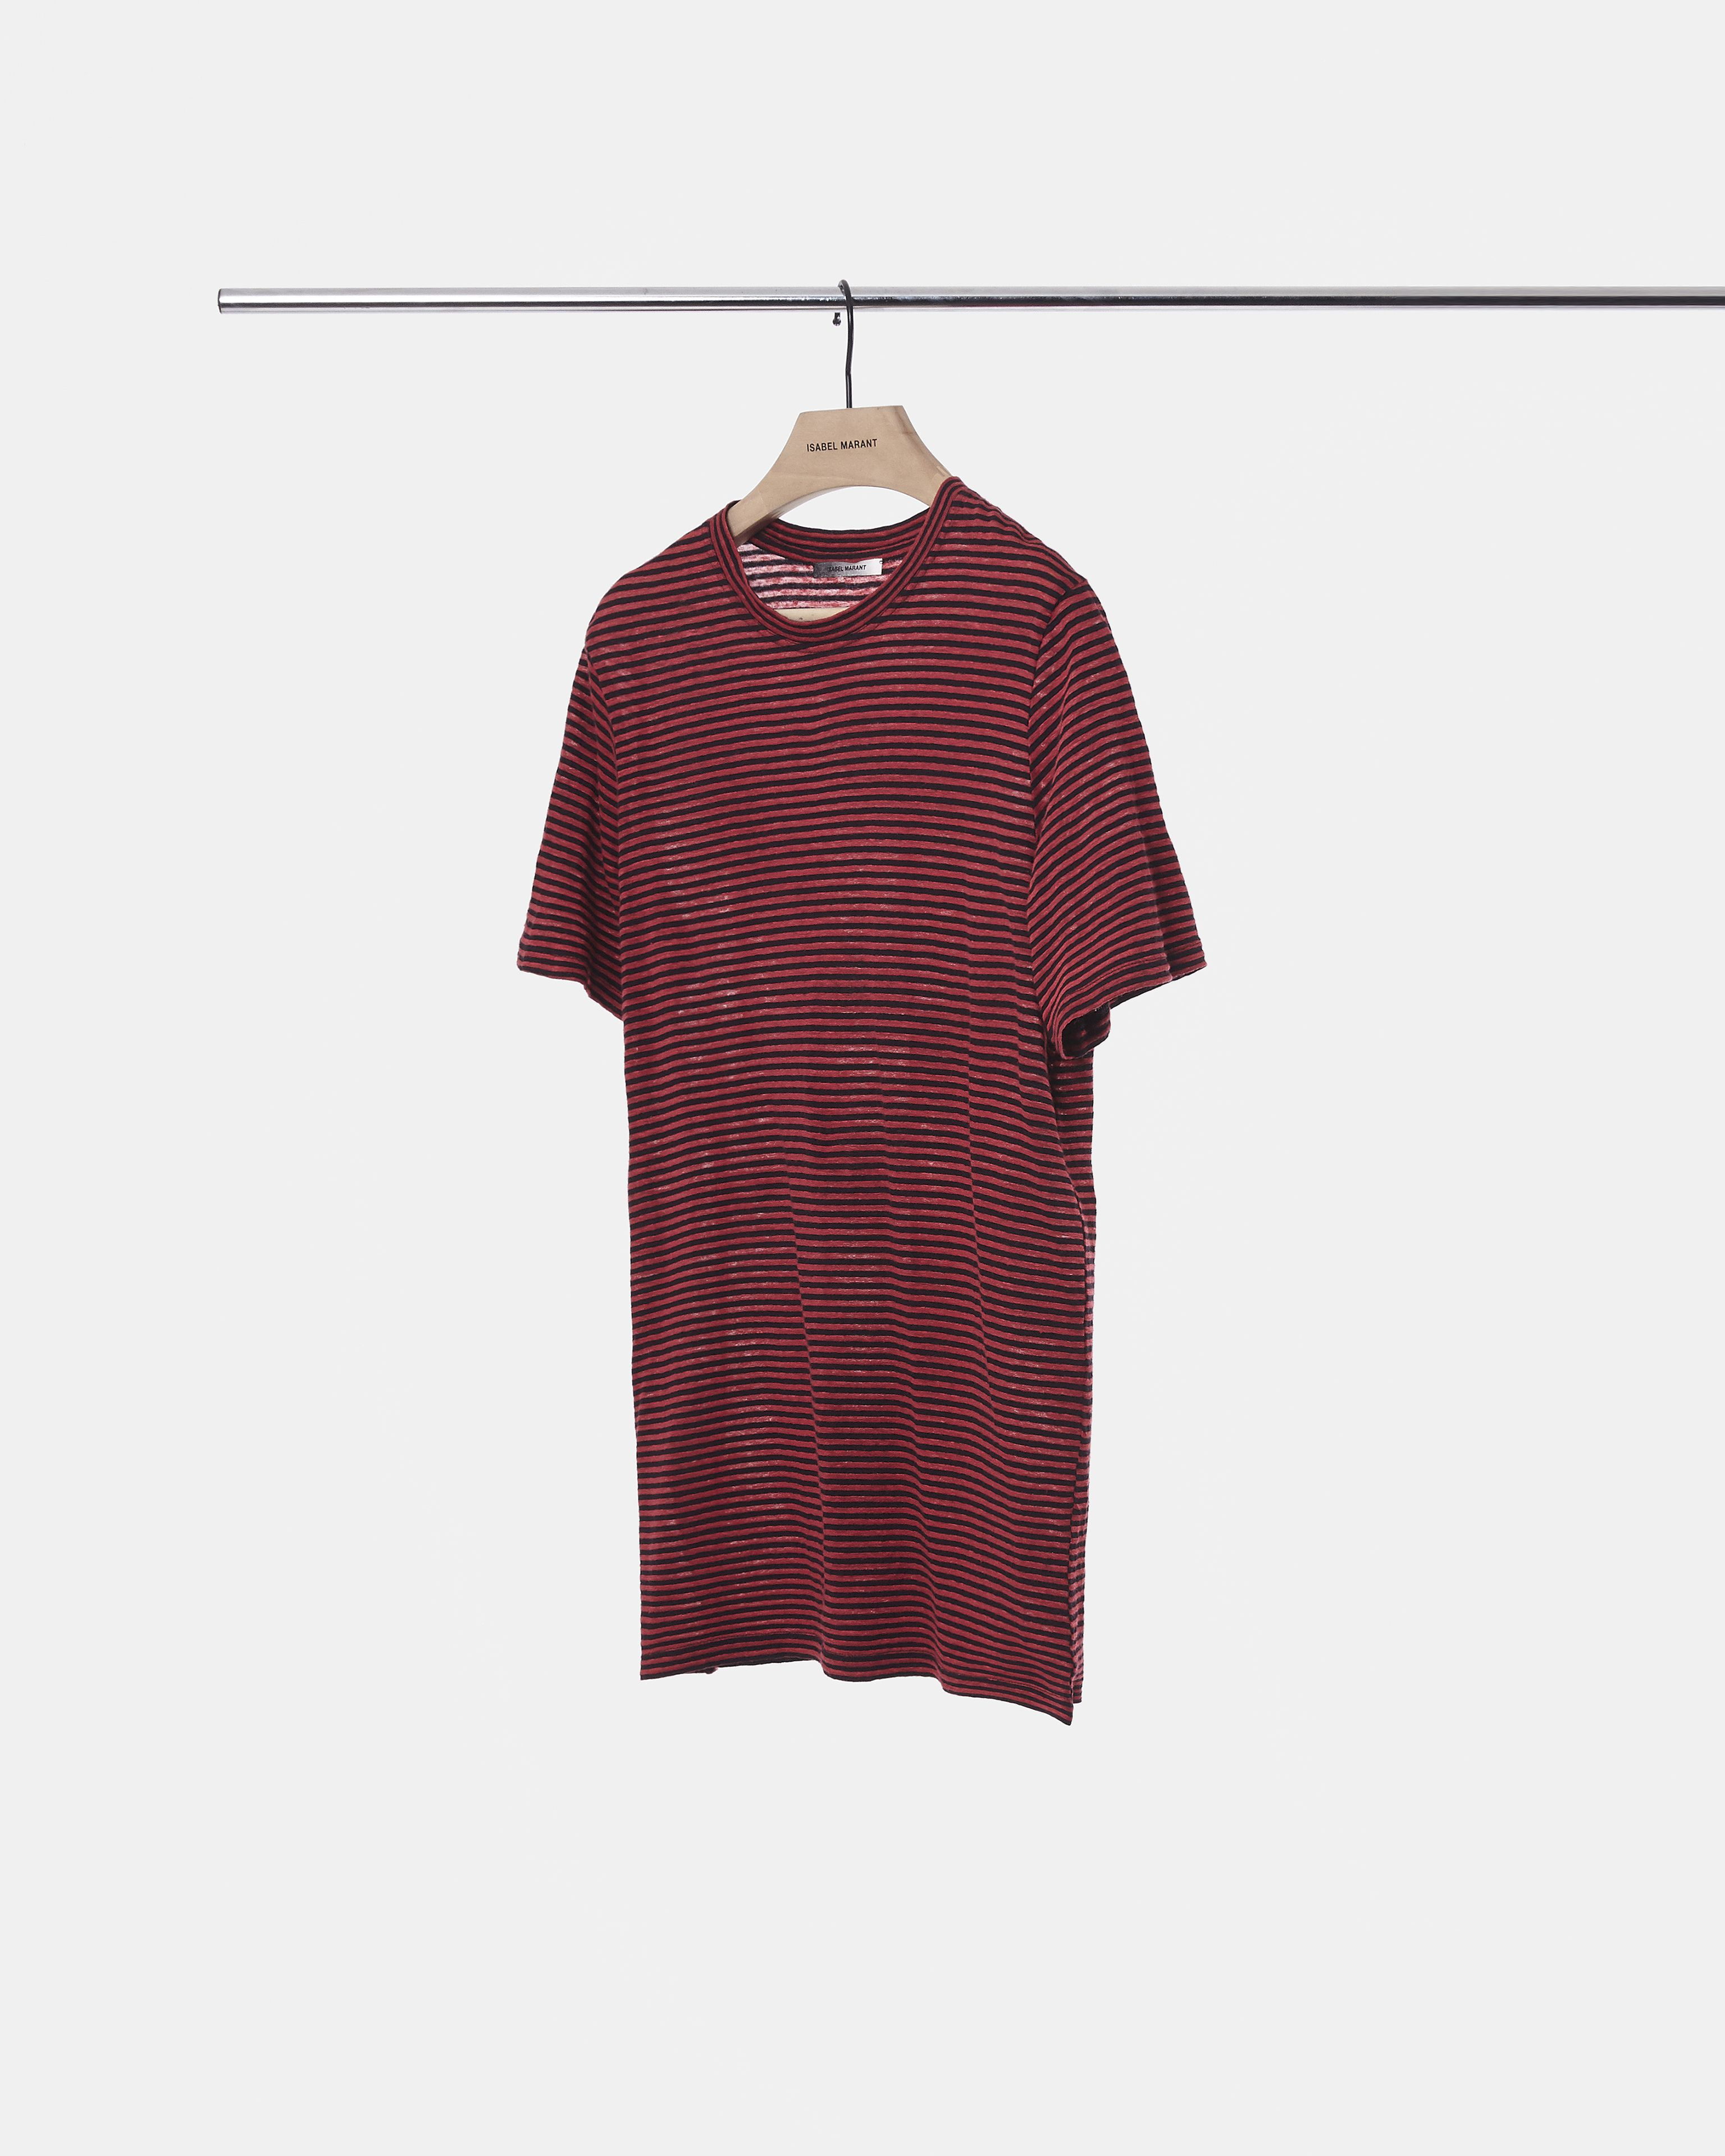 LEON striped T-shirt